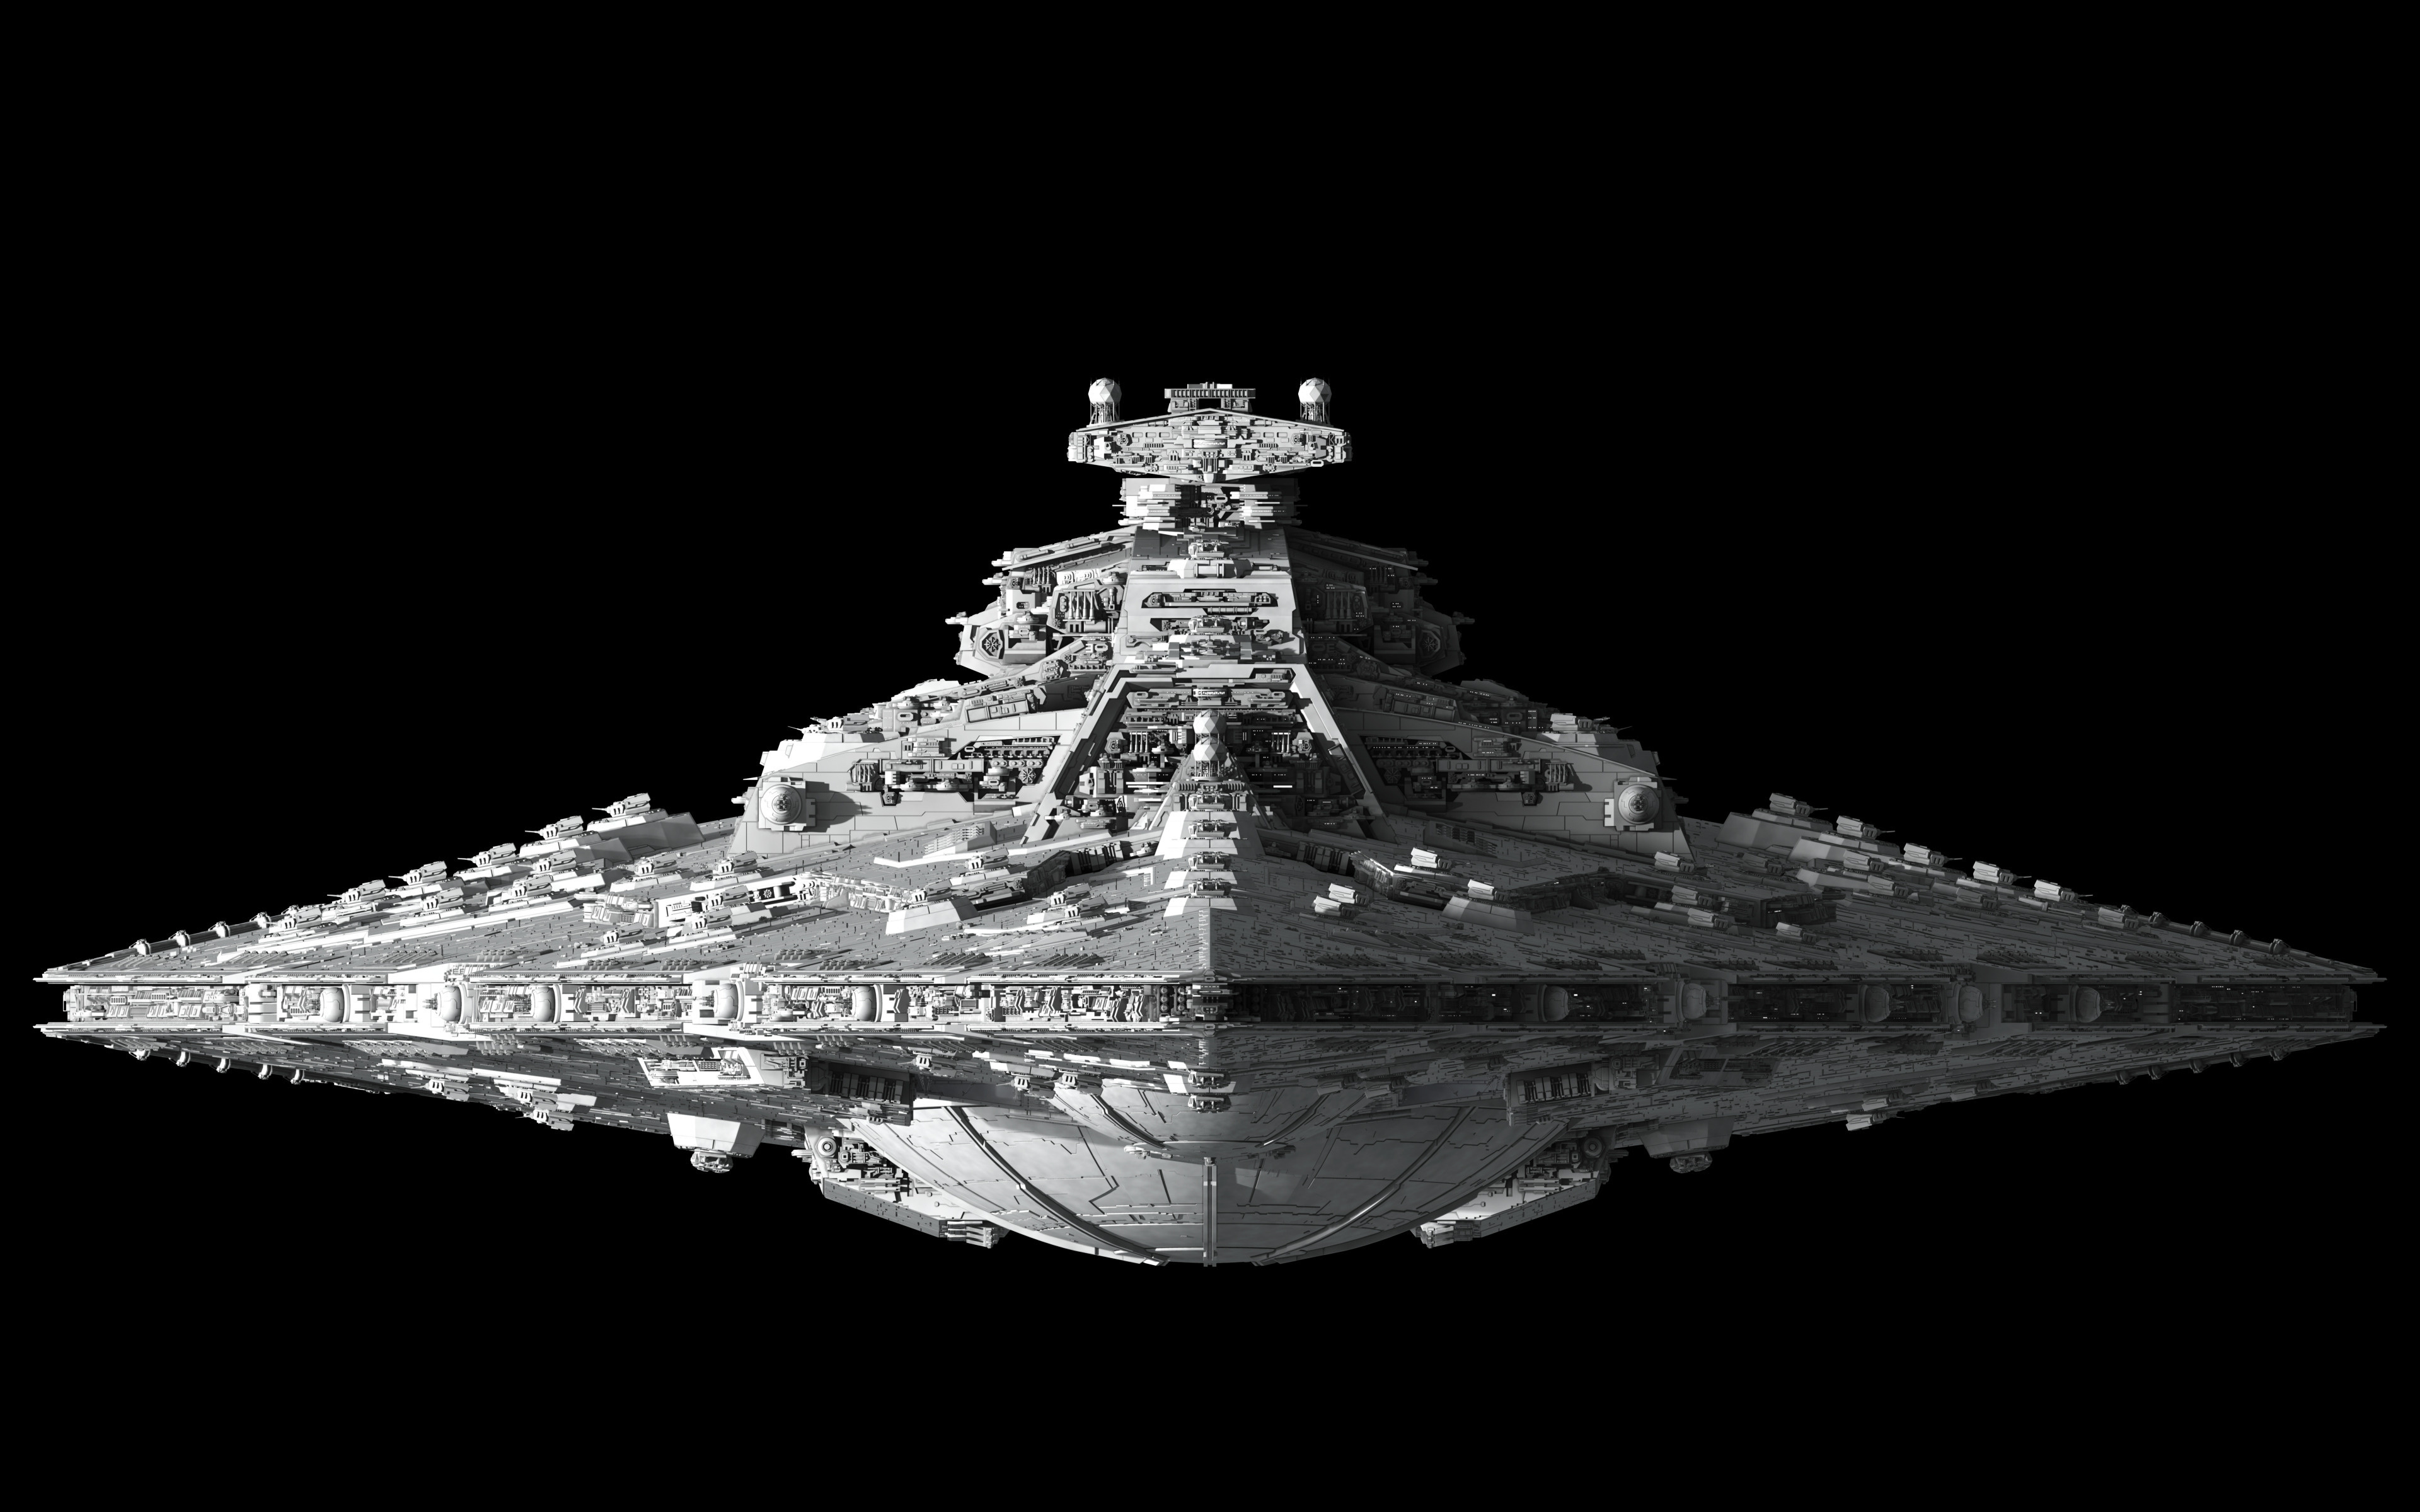 star wars wallpaper,vehicle,black and white,3d modeling